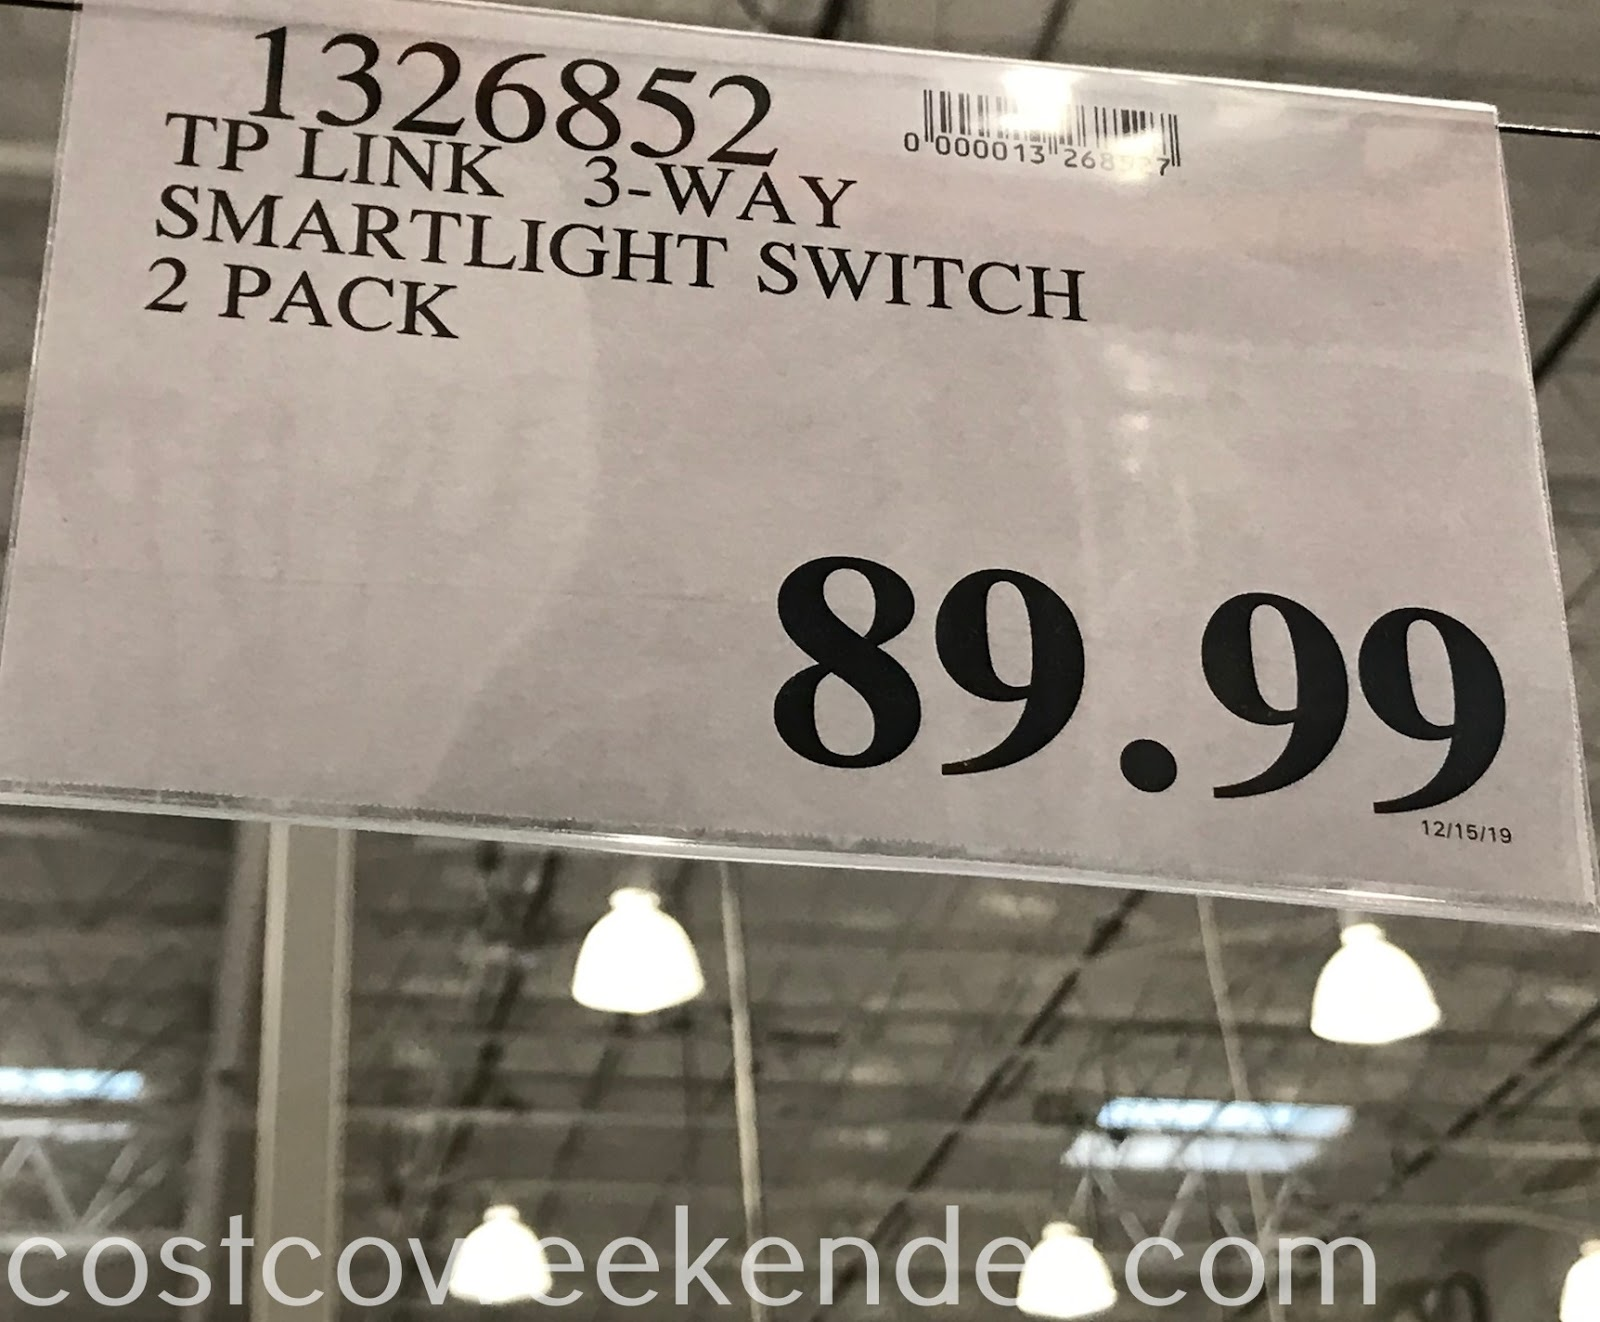 Deal for the TP-Link Smart Wi-Fi Light Switch 3-Way Kit at Costco